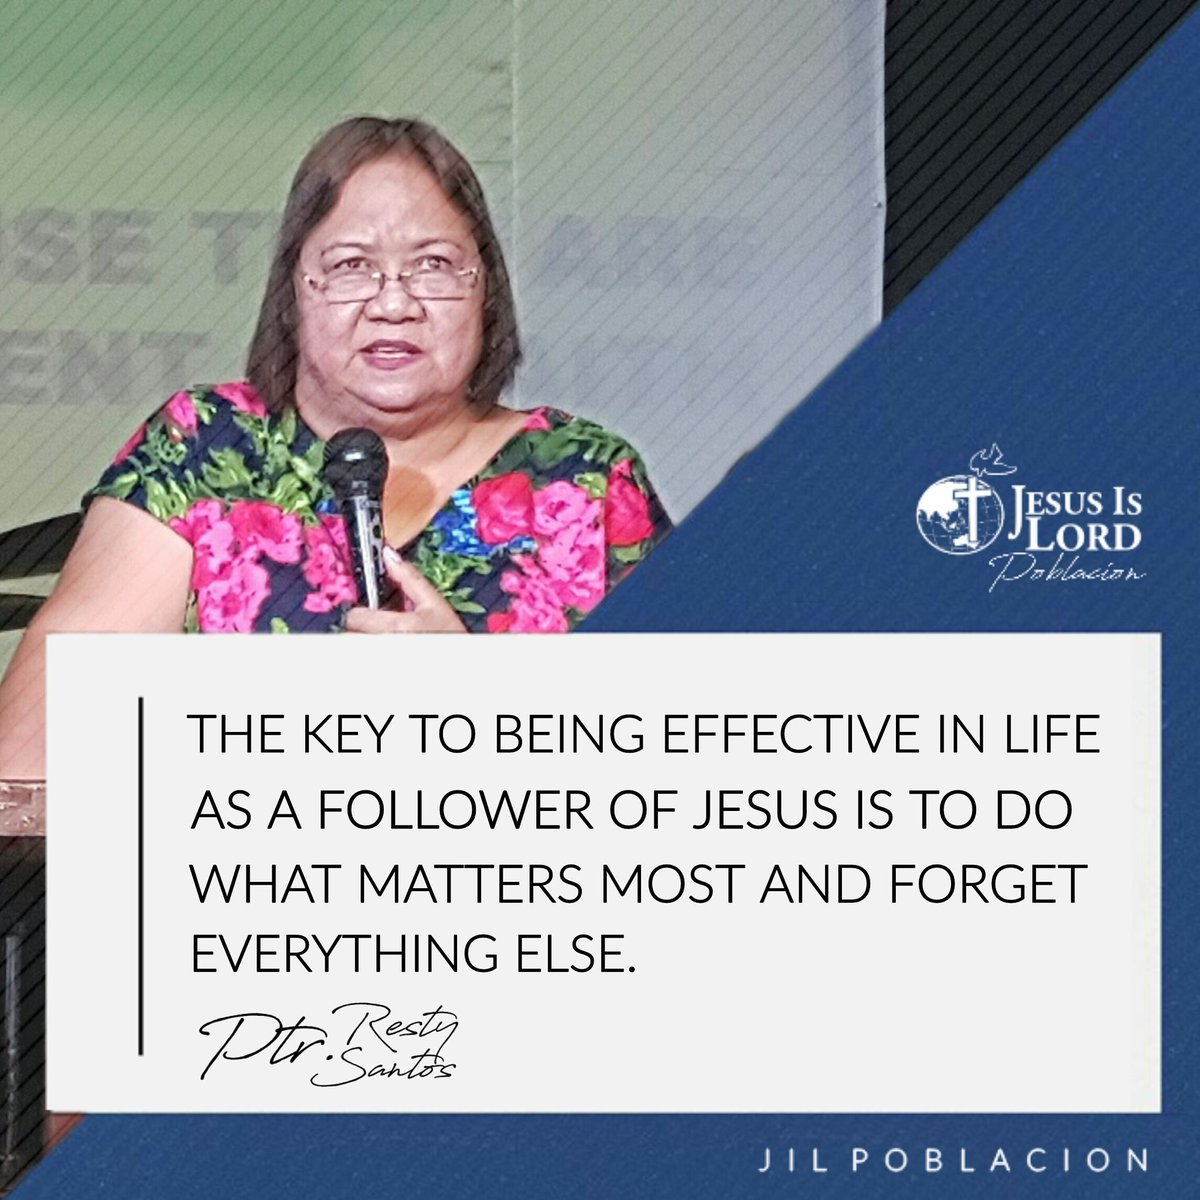 """The key to being effective in life as a follower of Jesus is to do what matters most and forget everything else."" - Ptr. Resty Santos  #jilpoblacion"